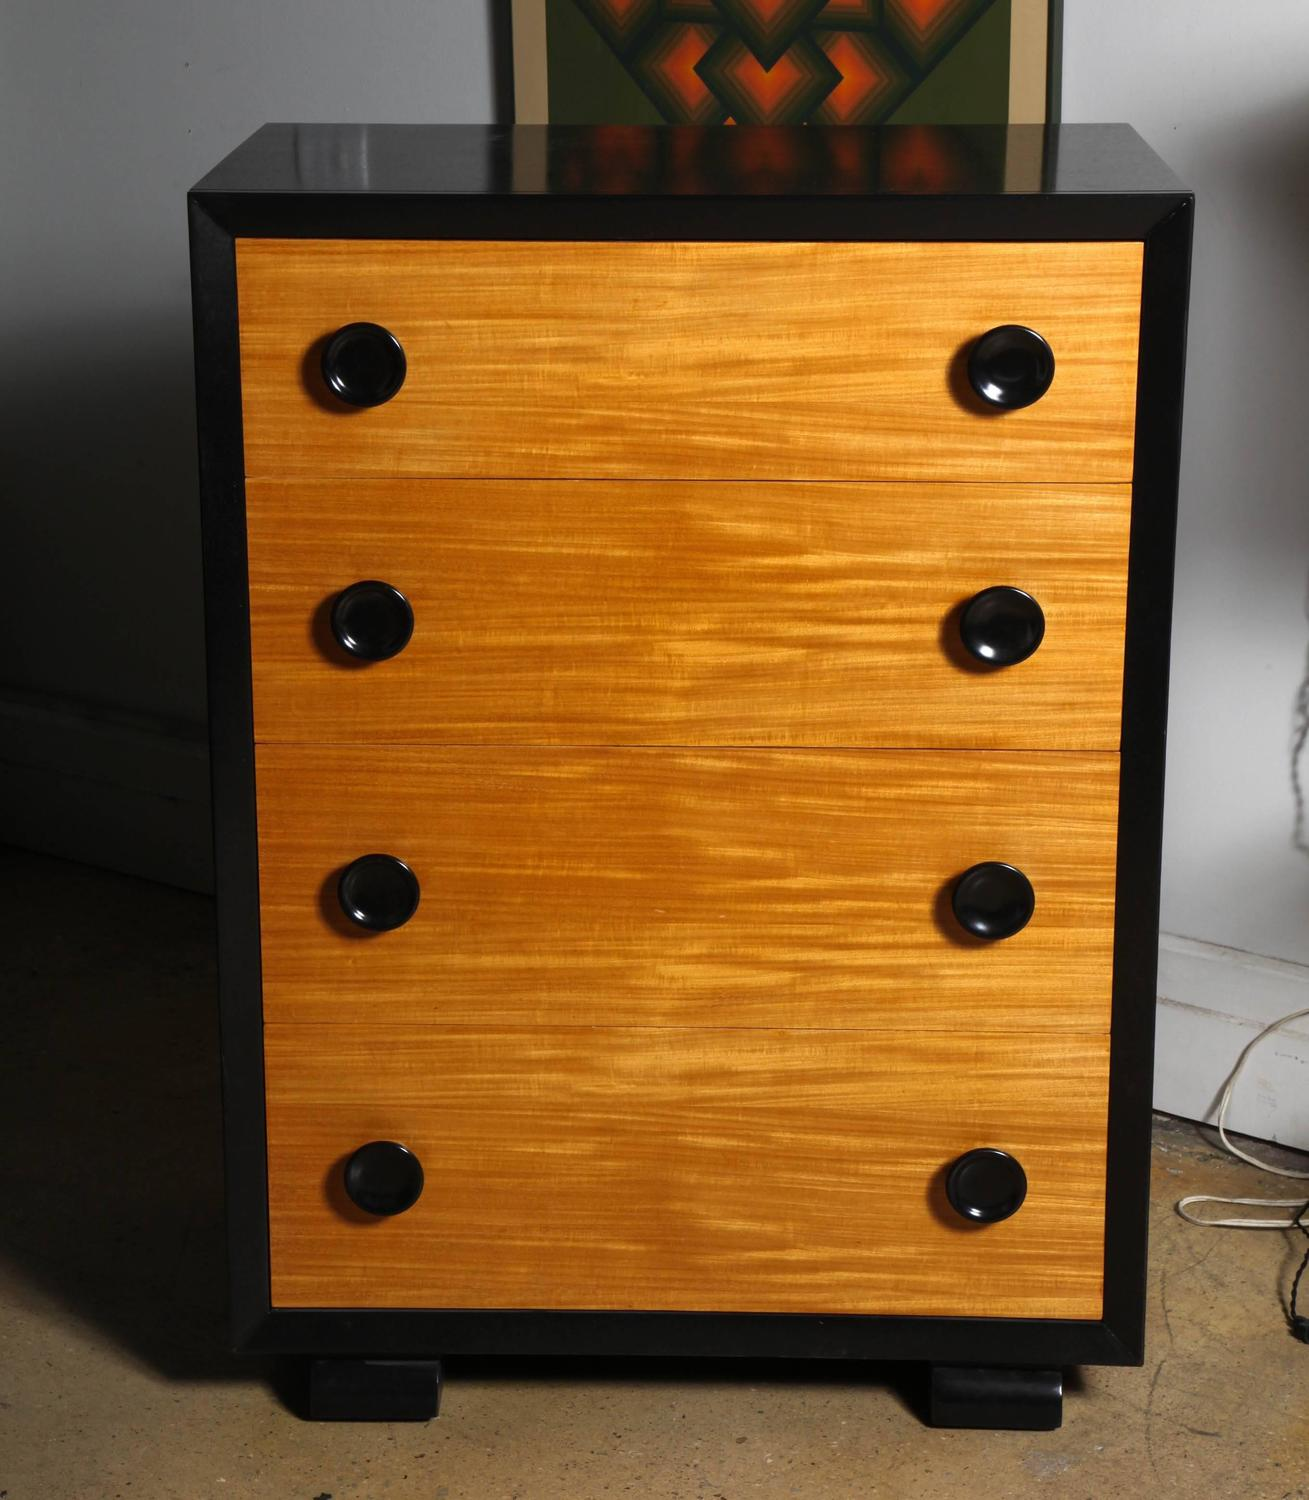 #AE4D03 Tall Americraft Art Deco Mahogany And Black Ebonized Mahogany Dresser  with 1309x1500 px of Recommended Tall Black Dressers 15001309 save image @ avoidforclosure.info